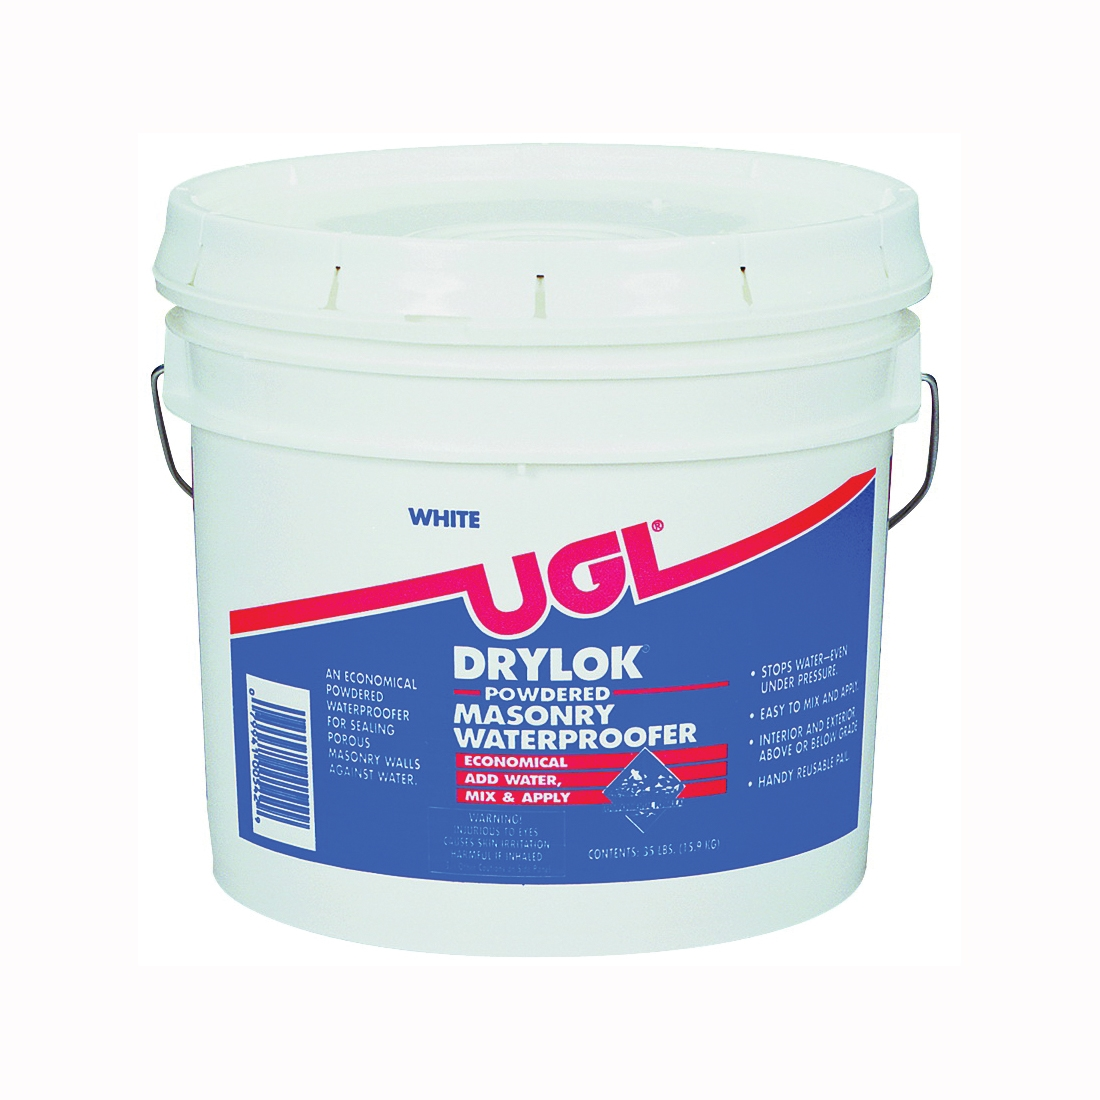 Picture of UGL DRYLOK 00542 Powder Waterproofer, White, Powder, 35 lb Package, Pail